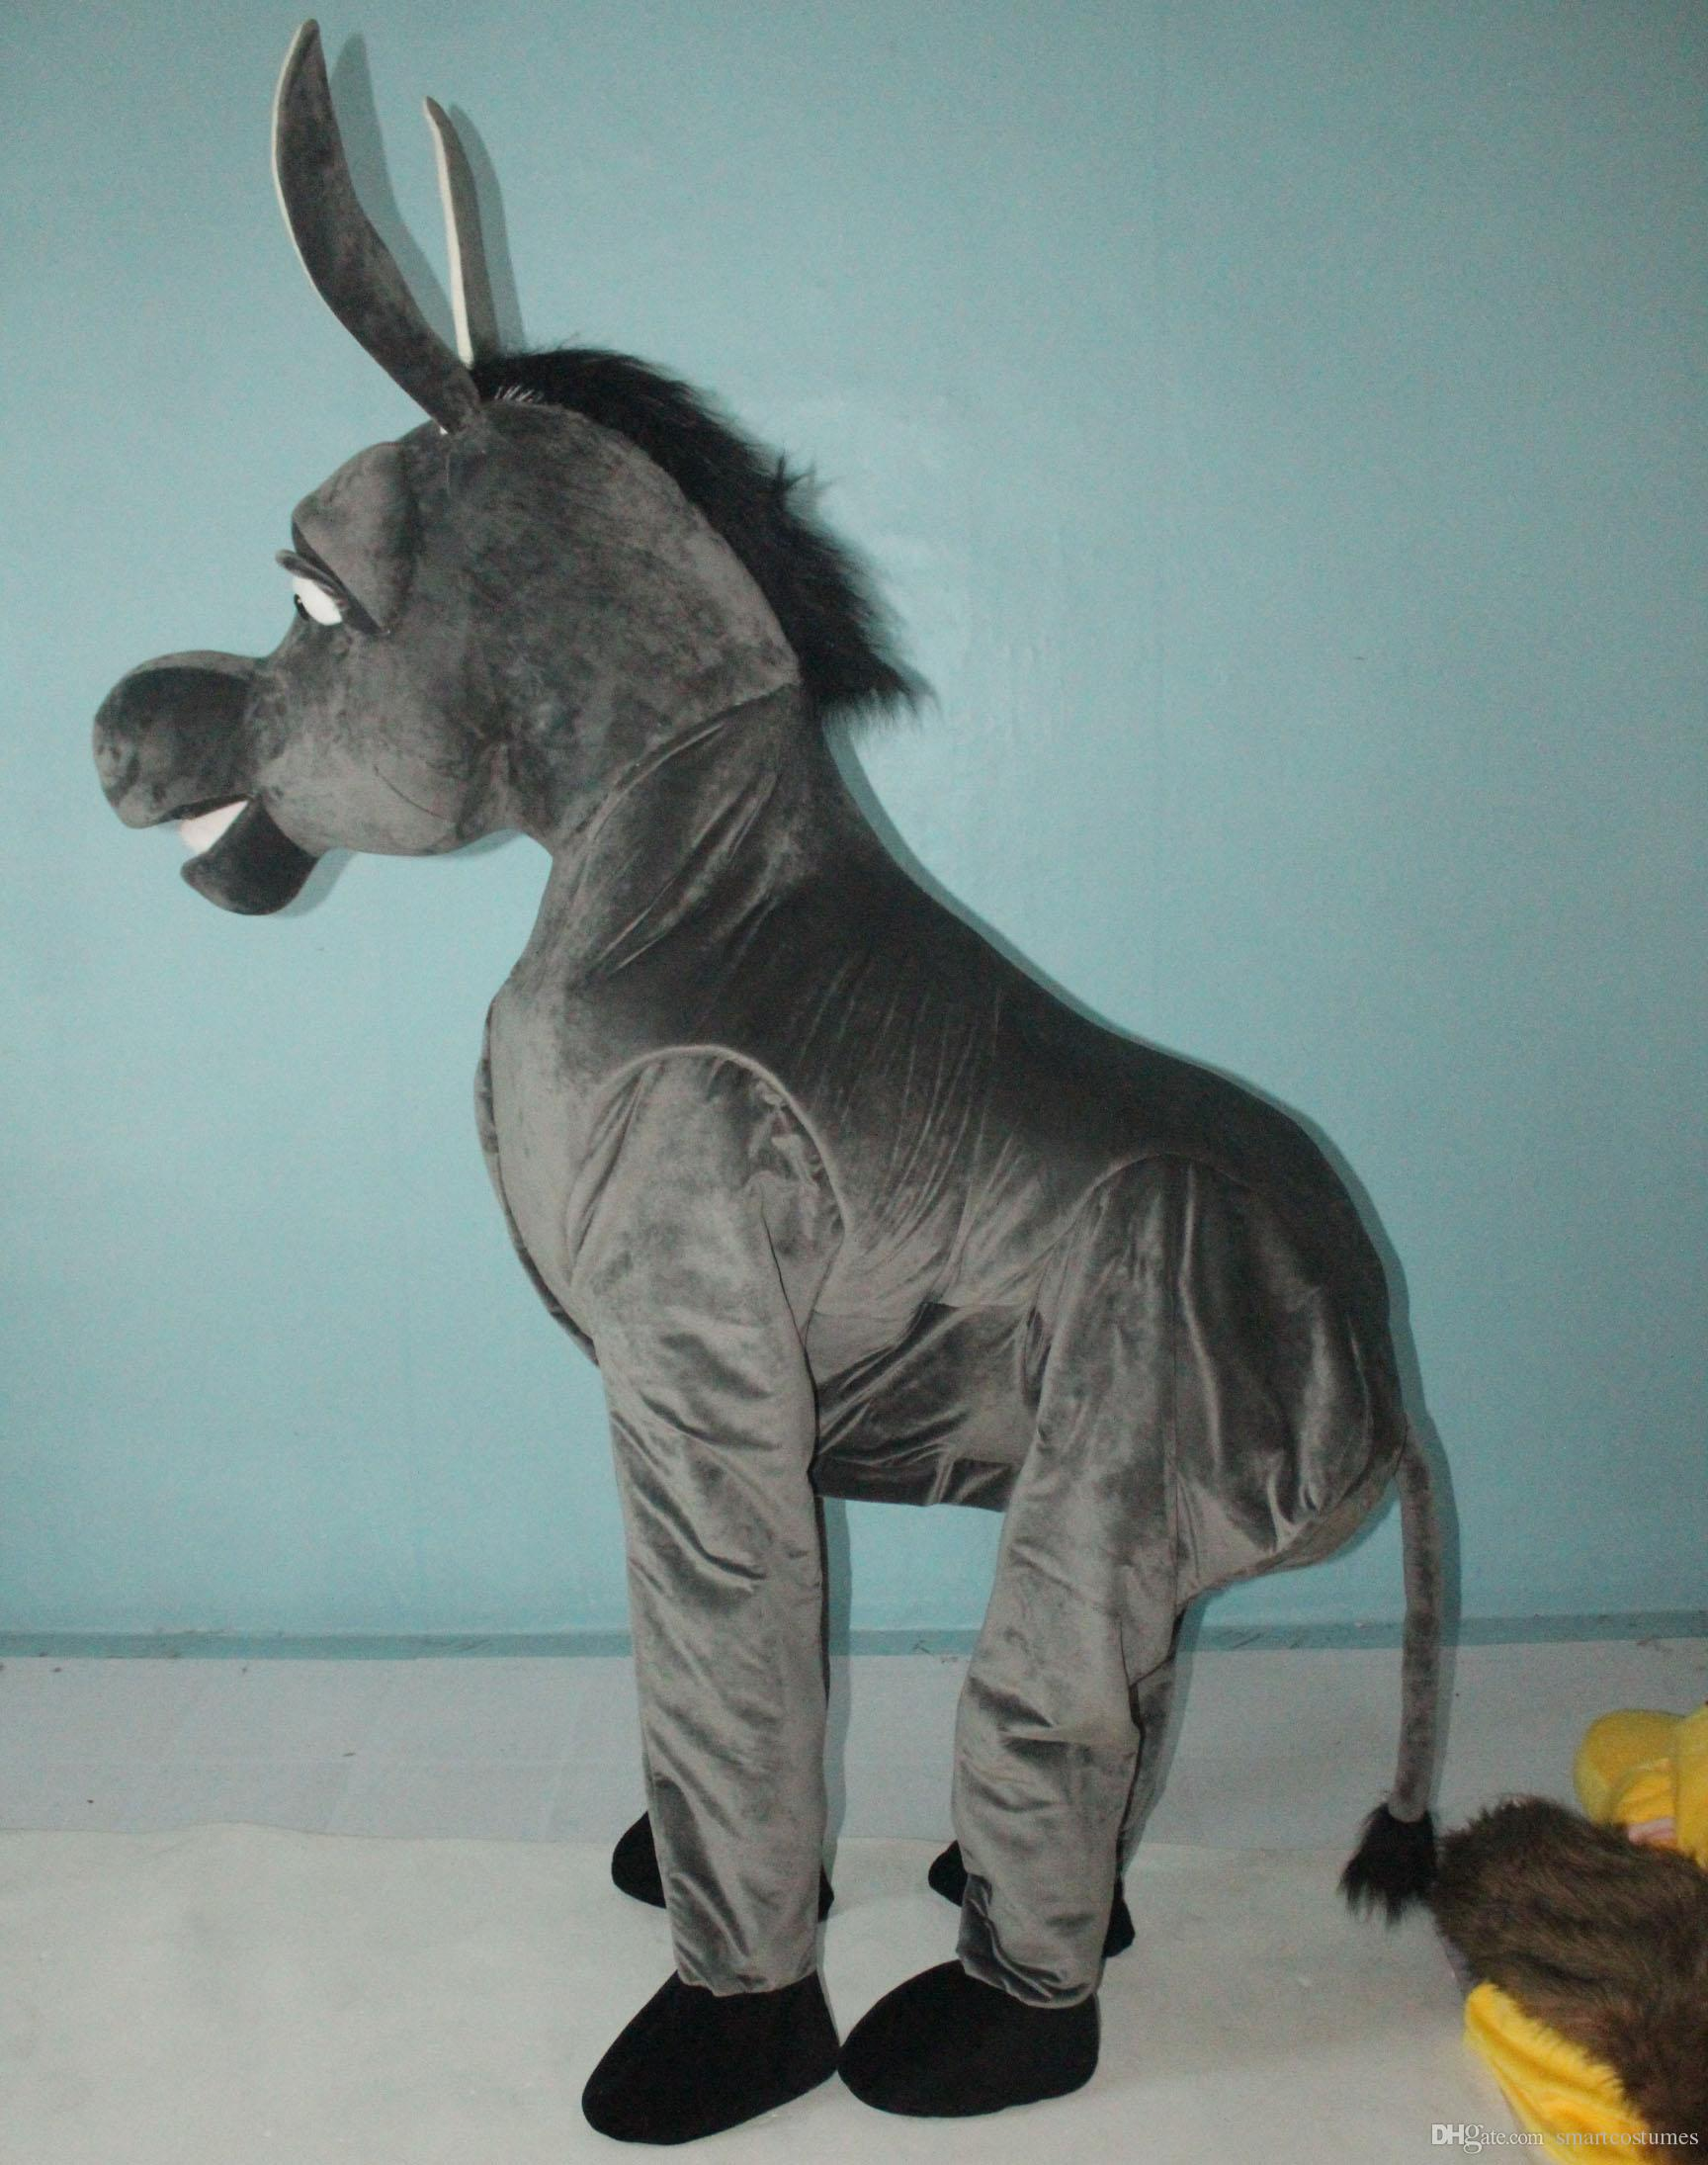 Sx0727 100% Real Photos Of Two Persons Wear Donkey Horse Mascot Costume For Adults For Sale Team Mascots Animal Mascot Costumes From Smartcostumes ... & Sx0727 100% Real Photos Of Two Persons Wear Donkey Horse Mascot ...